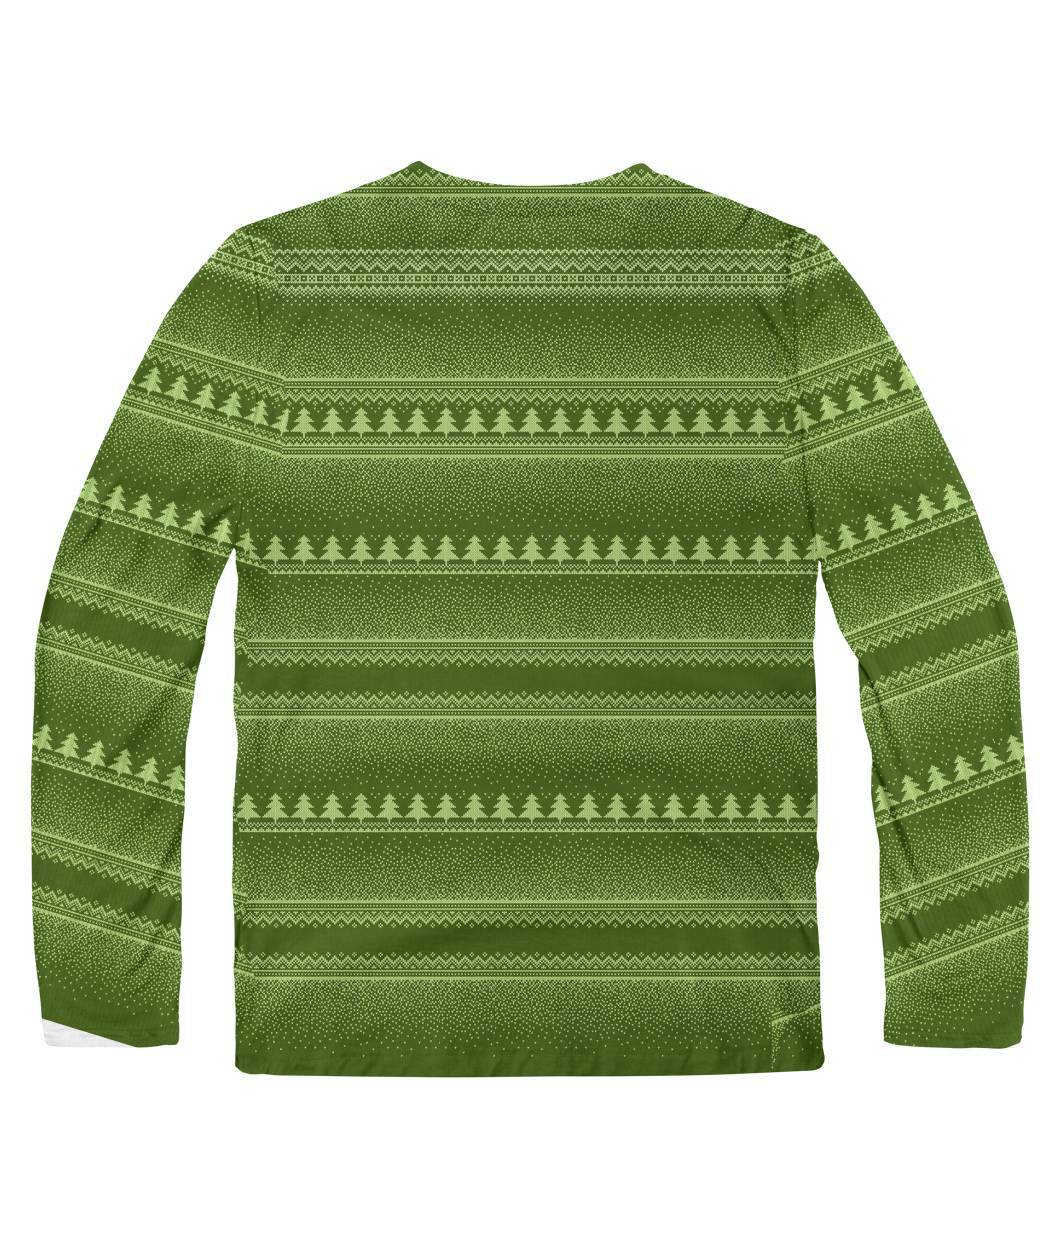 Elfed Ugly Sweater